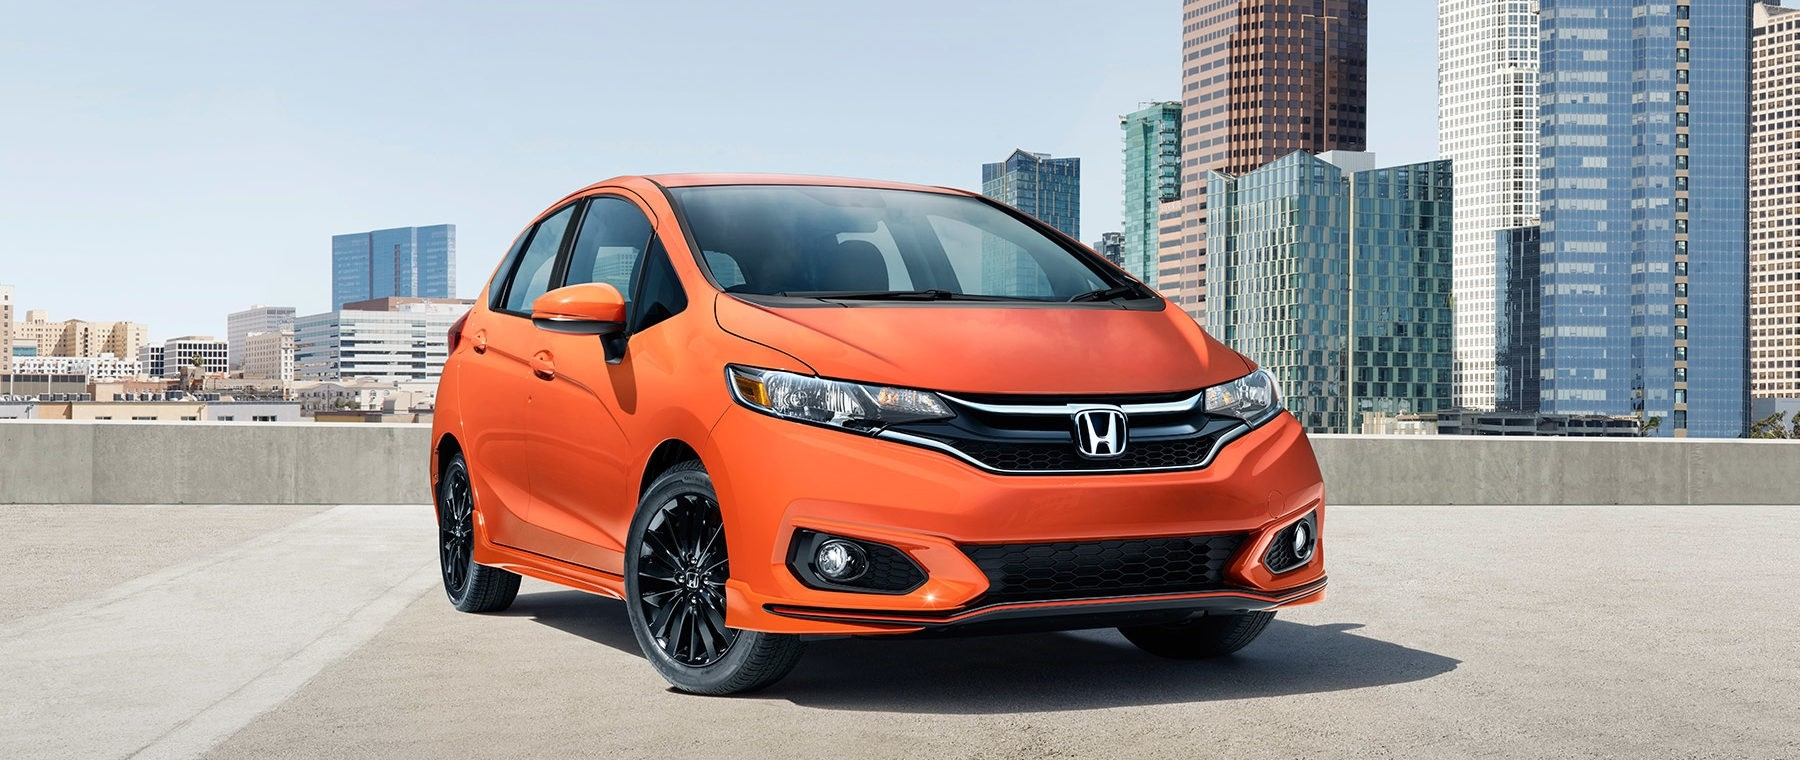 2019 honda fit refreshed and for sale at keenan honda 2019 honda fit refreshed and for sale